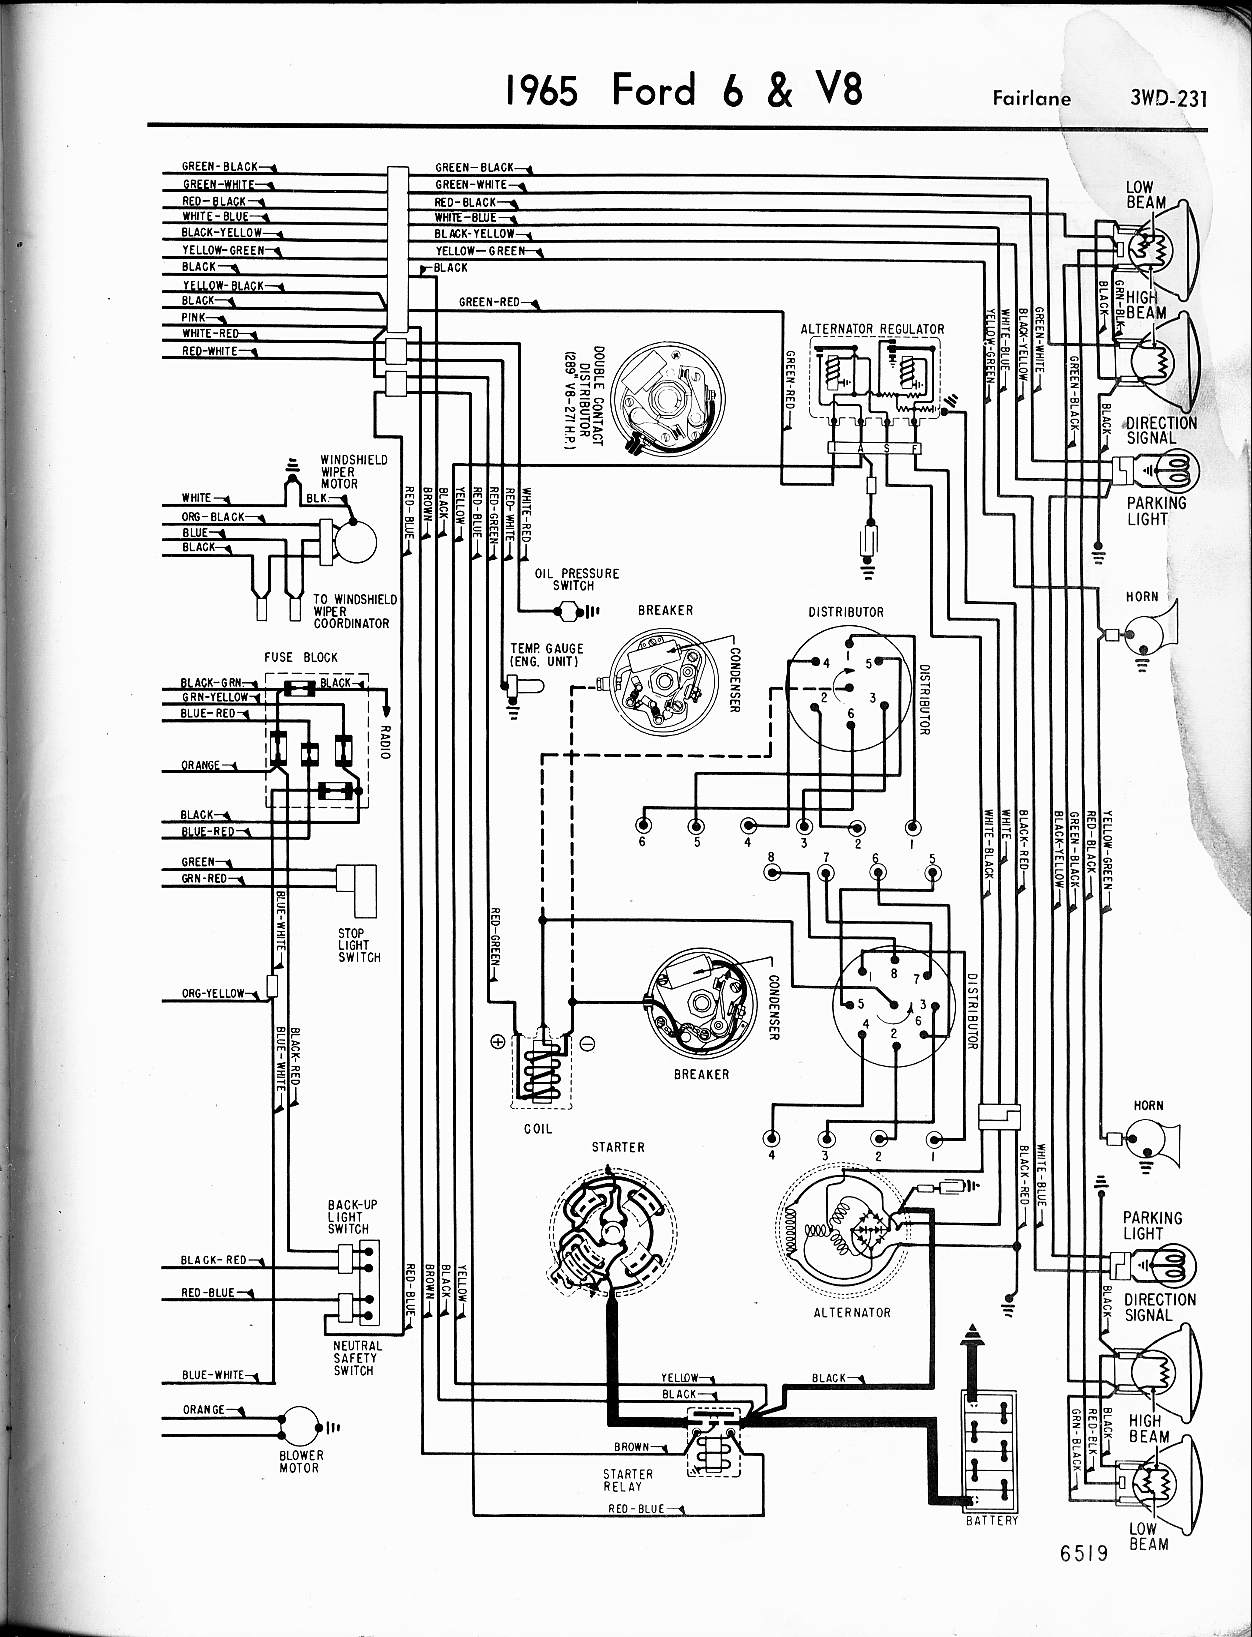 Heater Wiring Diagram 1968 Ford Galaxie Library 66 1965 6 V8 Fairlane Right